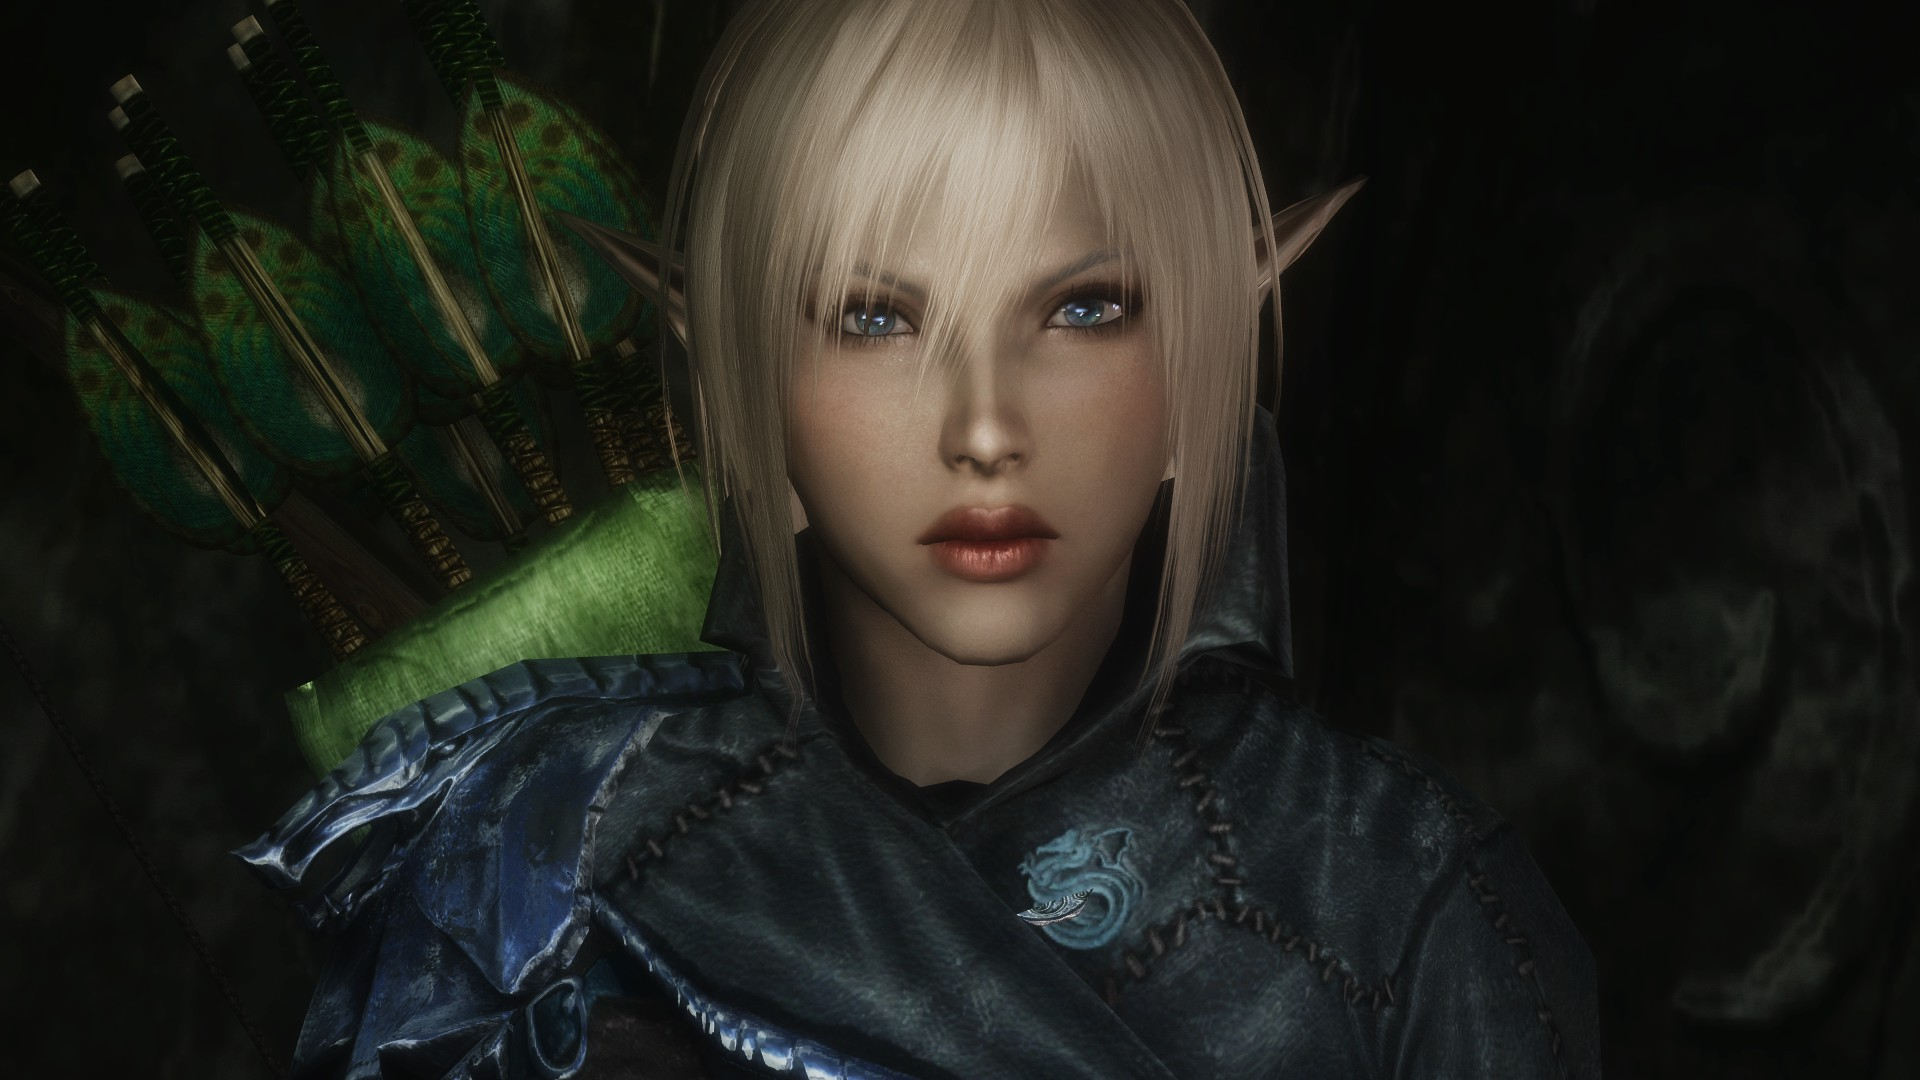 Pretty elf women sex picture